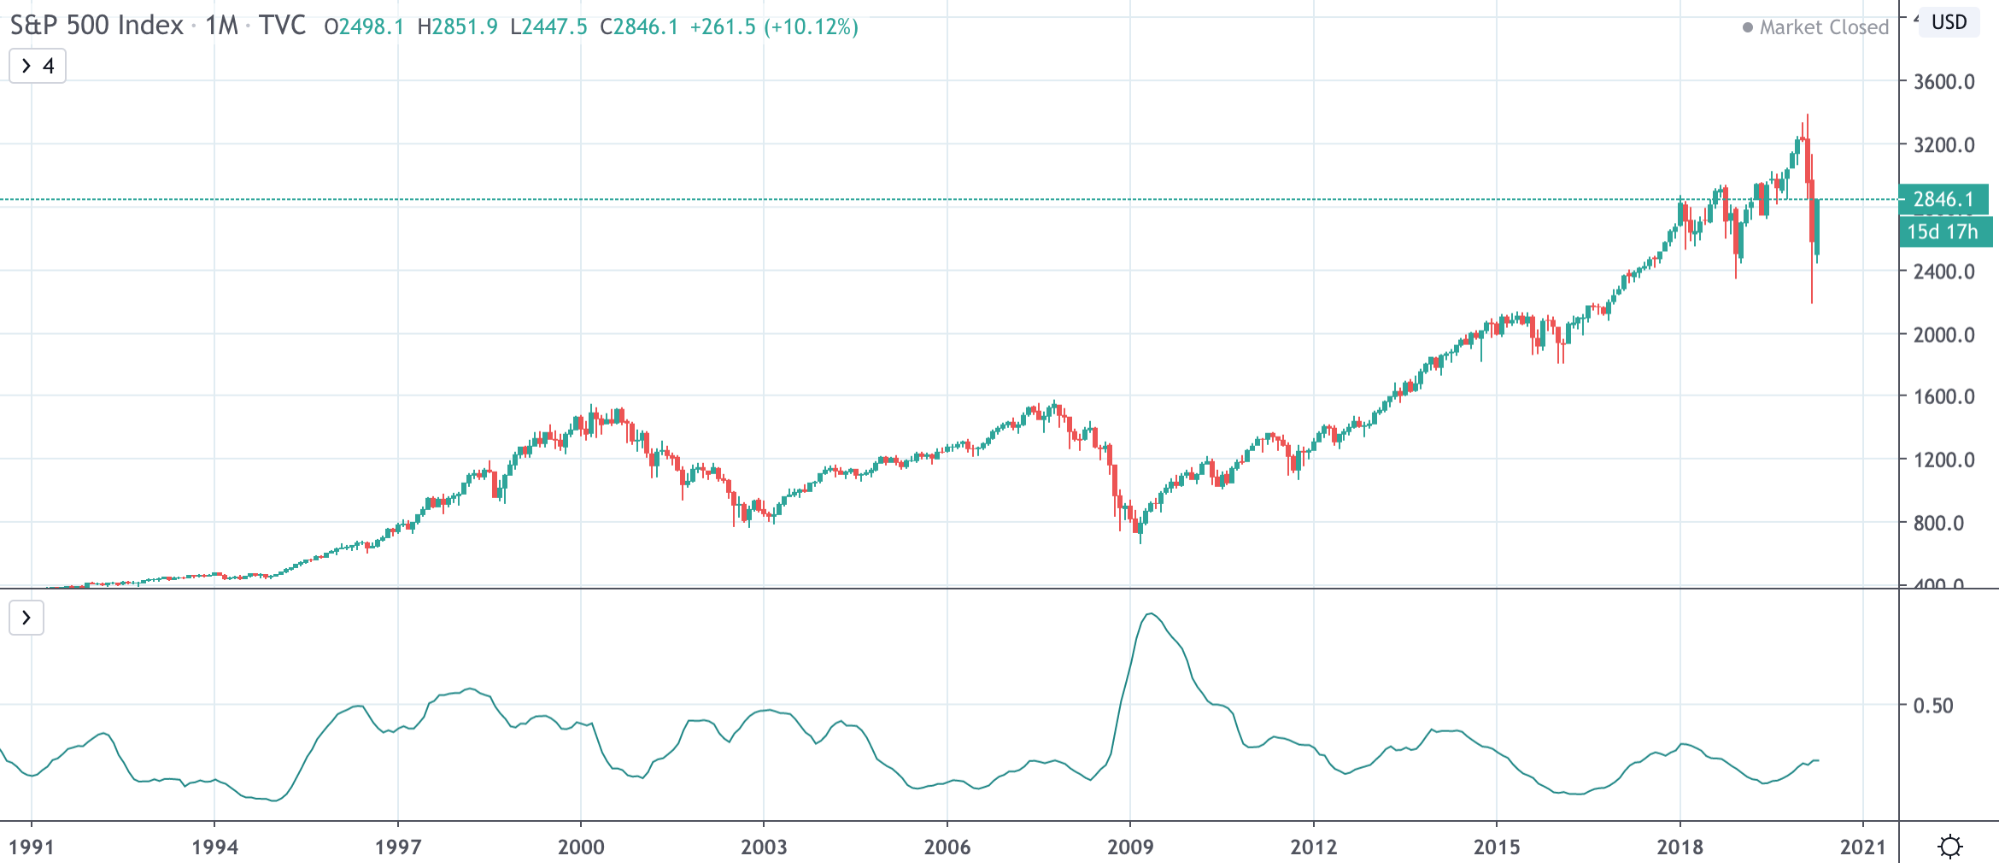 image10 1 - Dow Jones Vs NASDAQ Vs S&P 500: The Differences Traders Need To Know